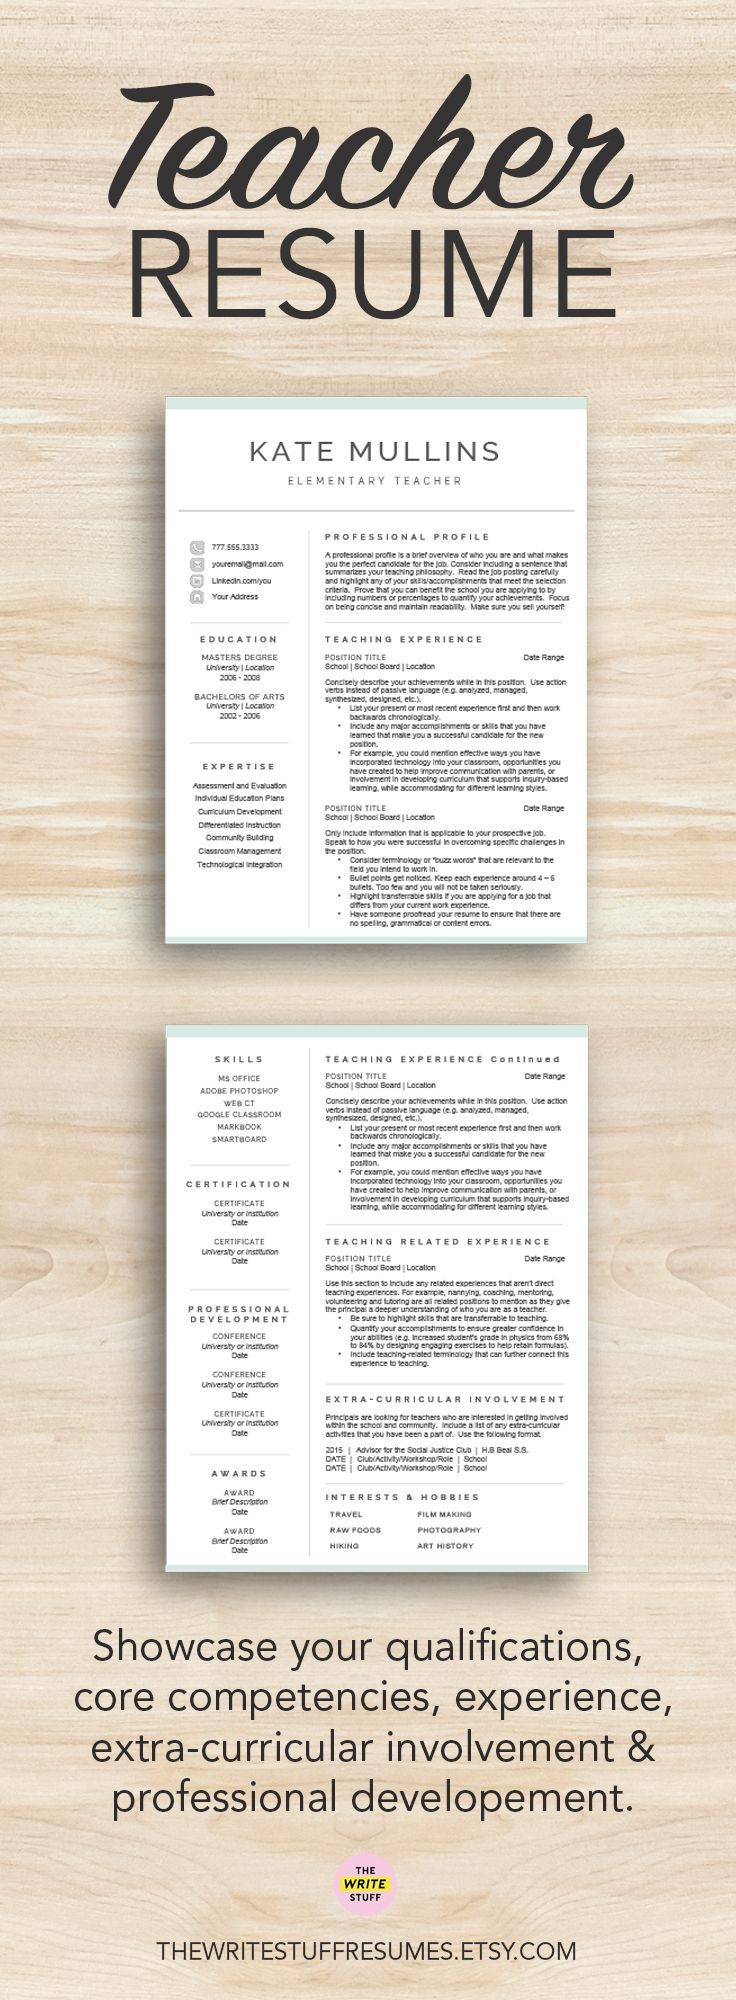 10 Best Curriculum Vitae Images On Pinterest